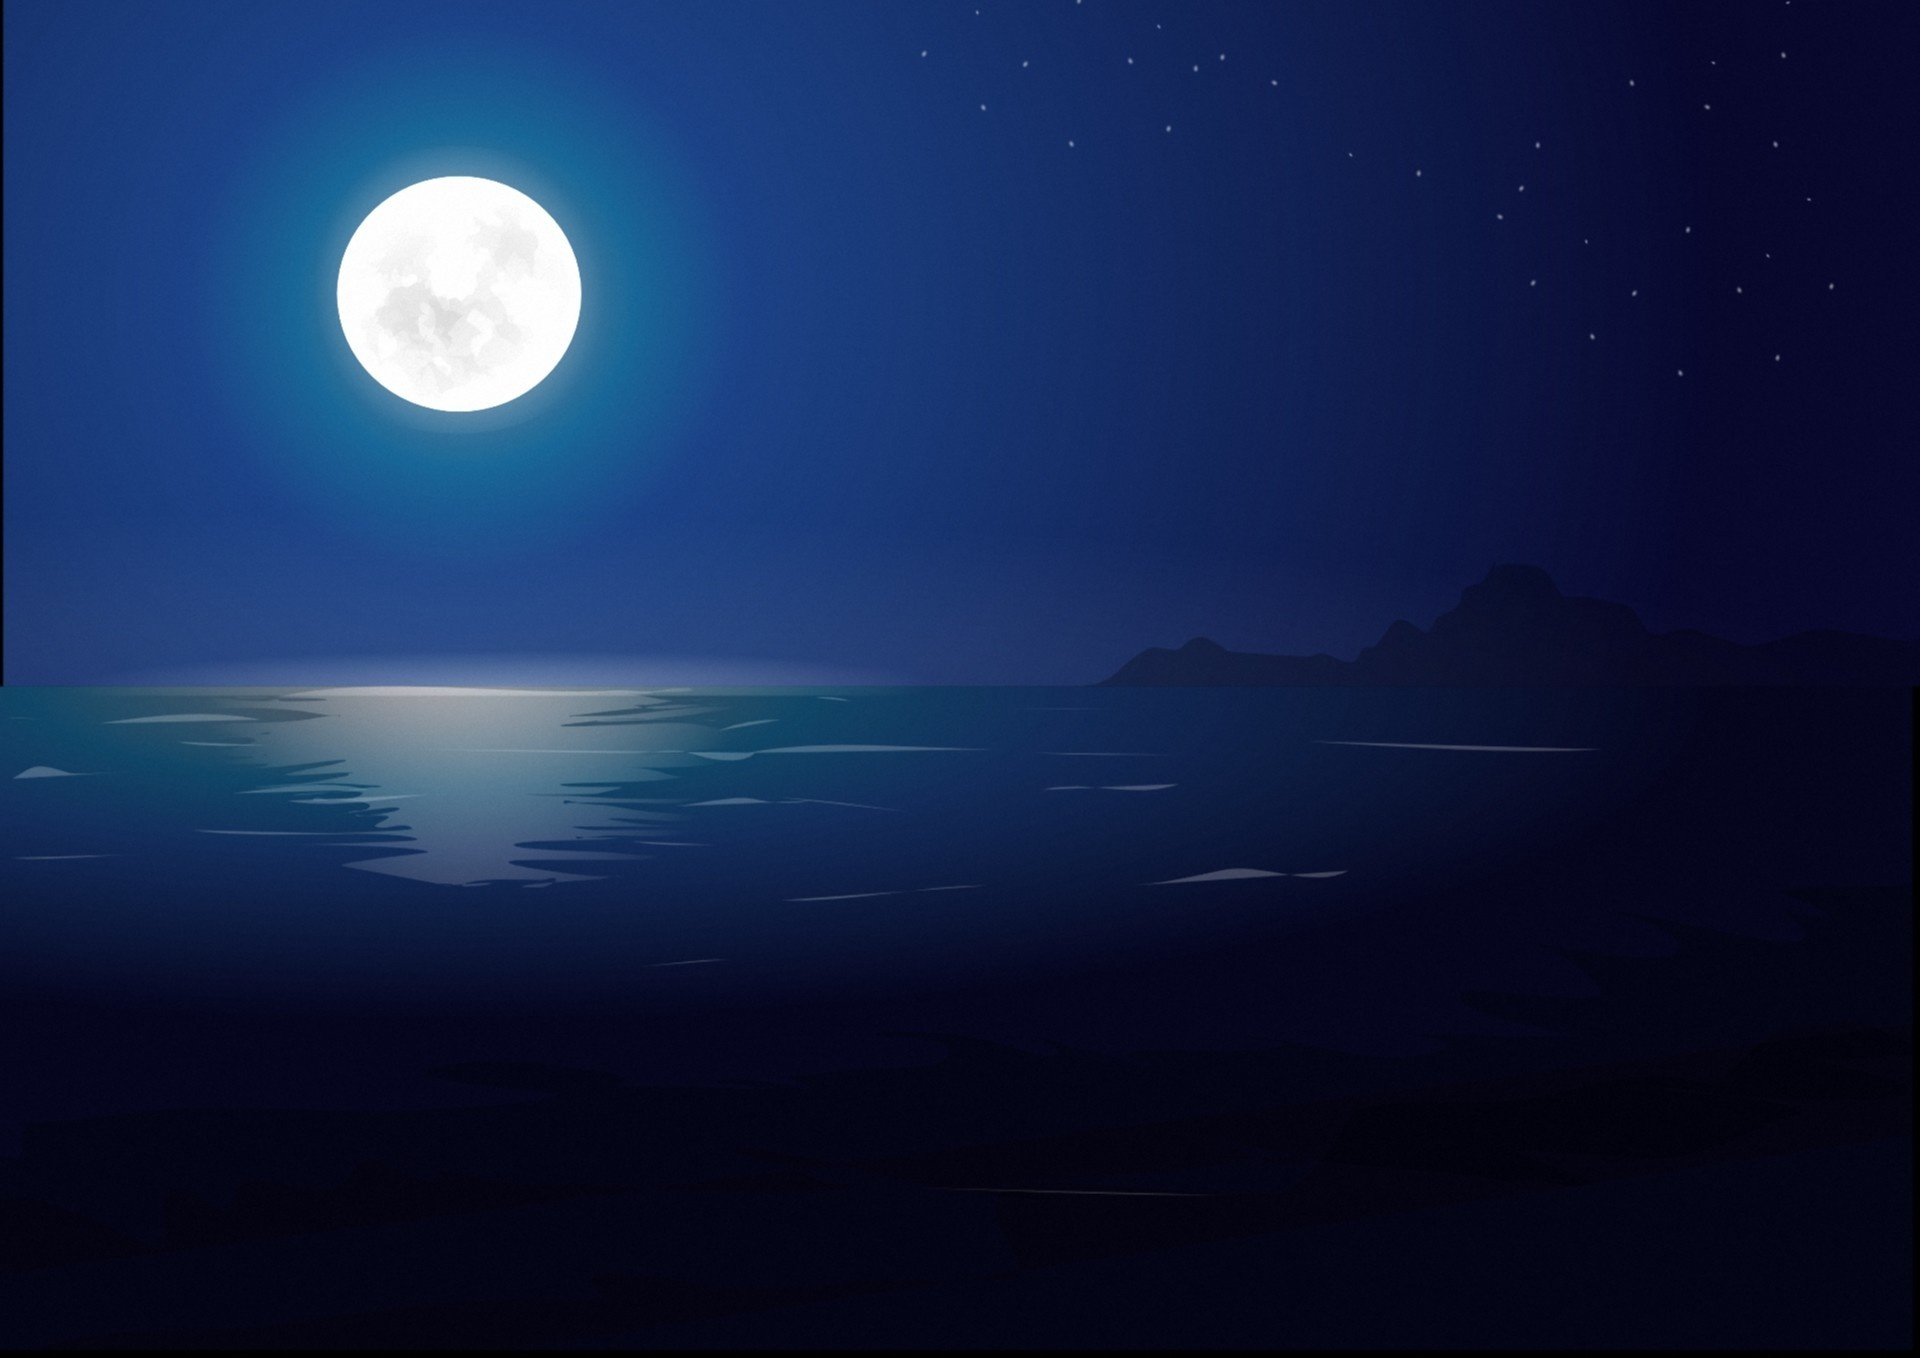 night ocean wallpaper wallpapersafari